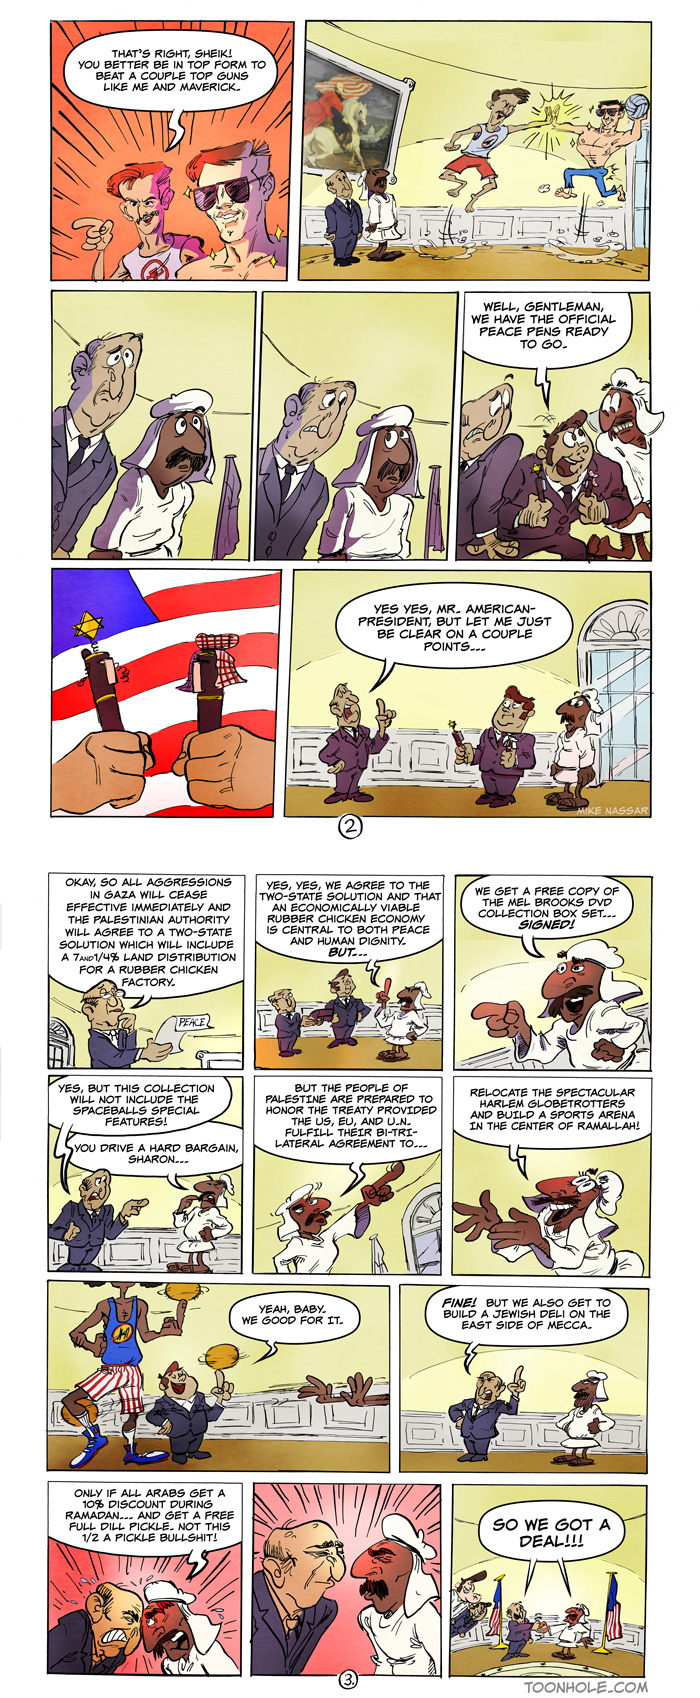 Dallas T. Washington – Pages 2-3